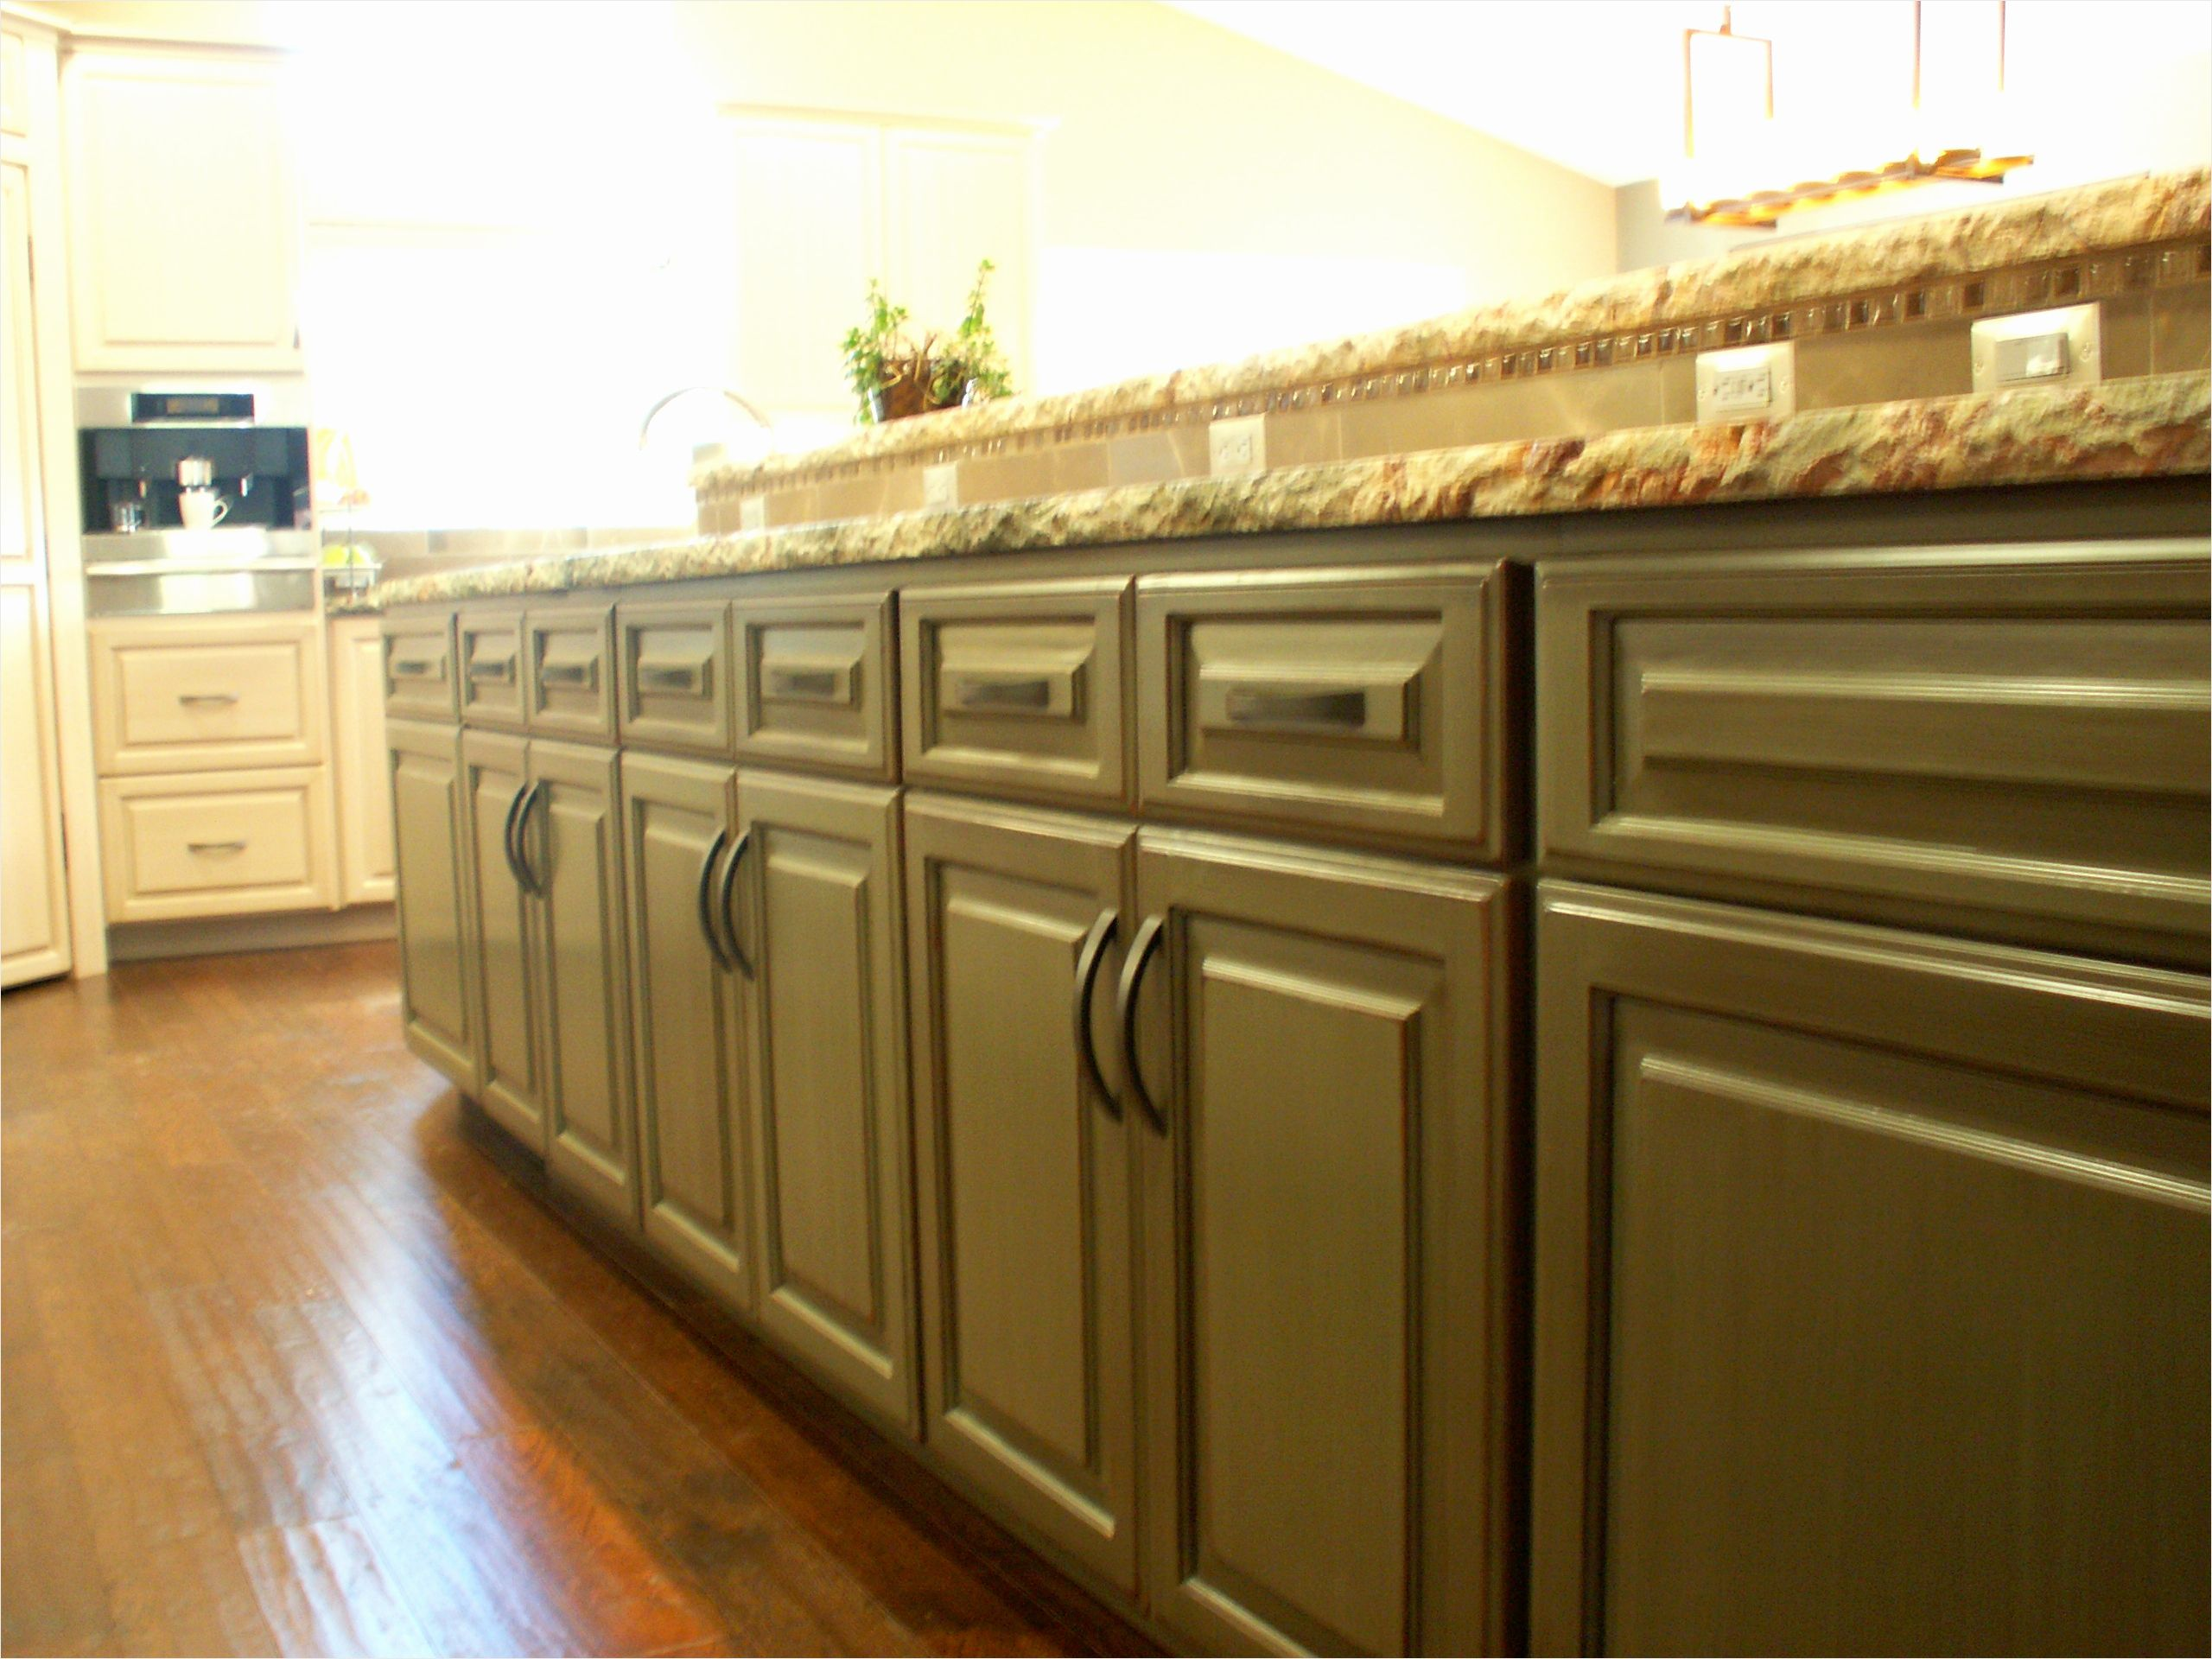 White Distressed Kitchen Cabinets New Distressed White Kitchen Cabinets Elegant Olive Green Dist Kitchen Cabinet Design Kitchen Cabinets Green Kitchen Cabinets